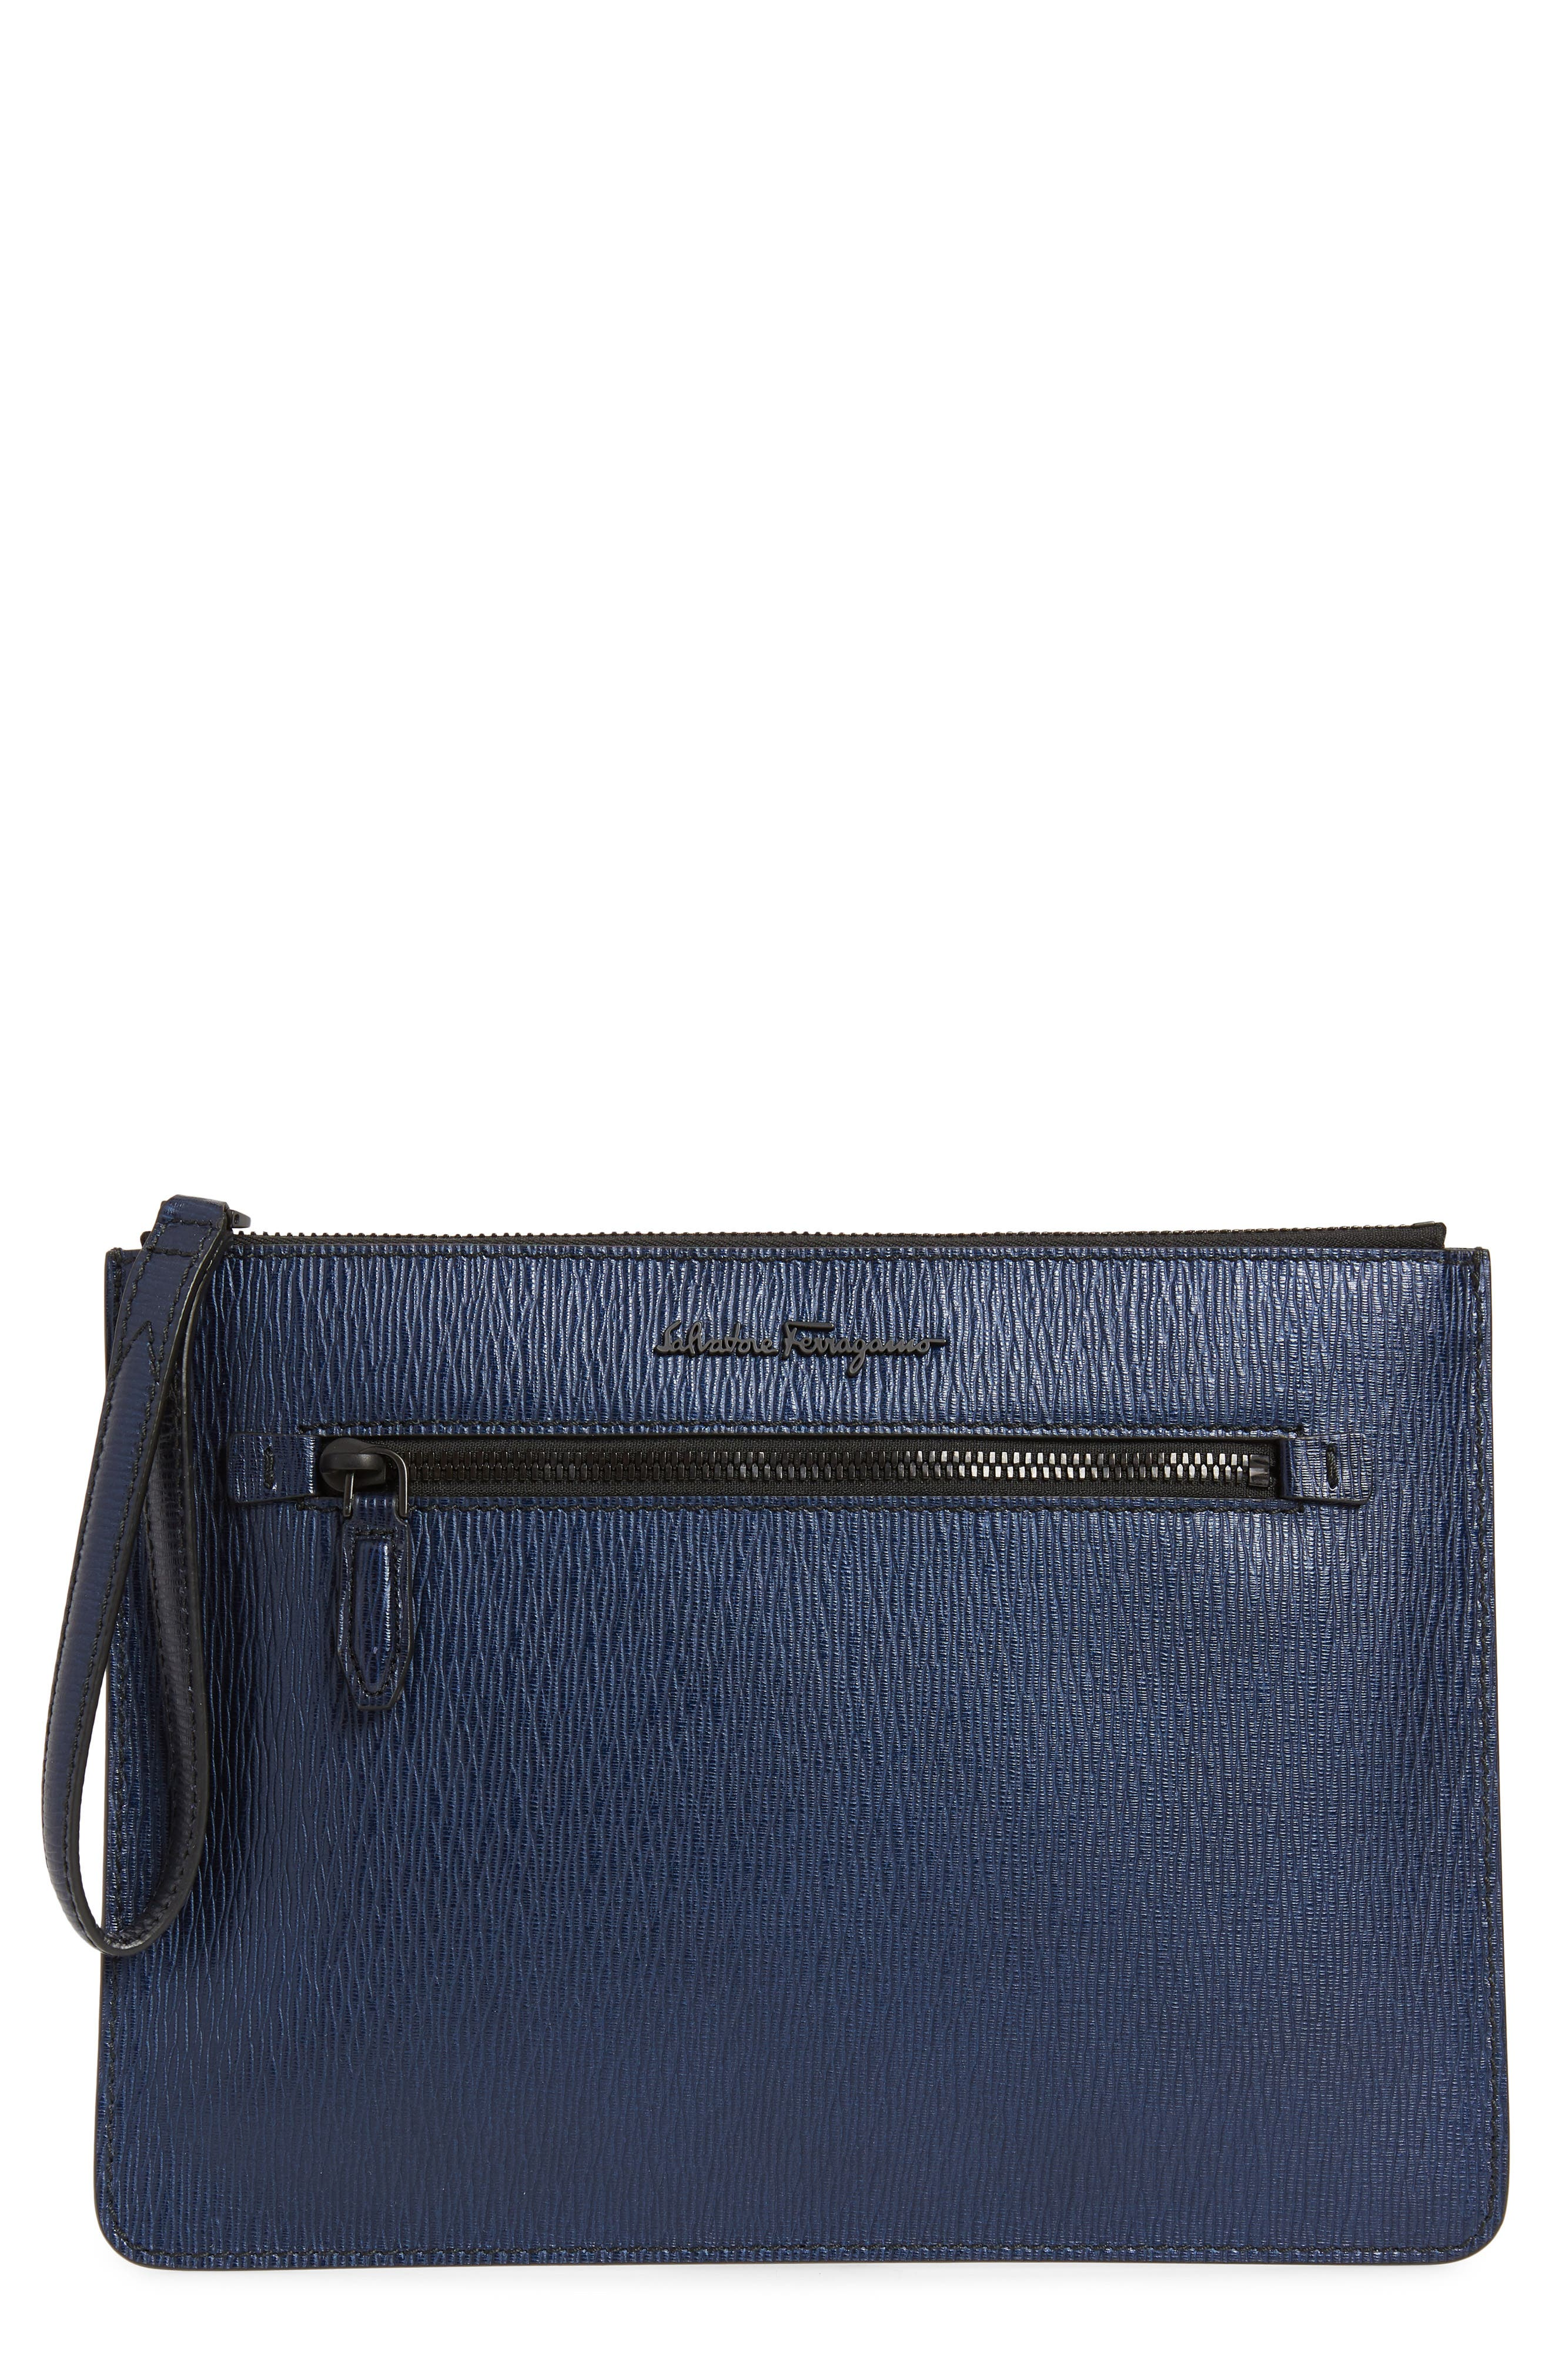 Textured Leather Zip Pouch,                             Main thumbnail 1, color,                             NAVY